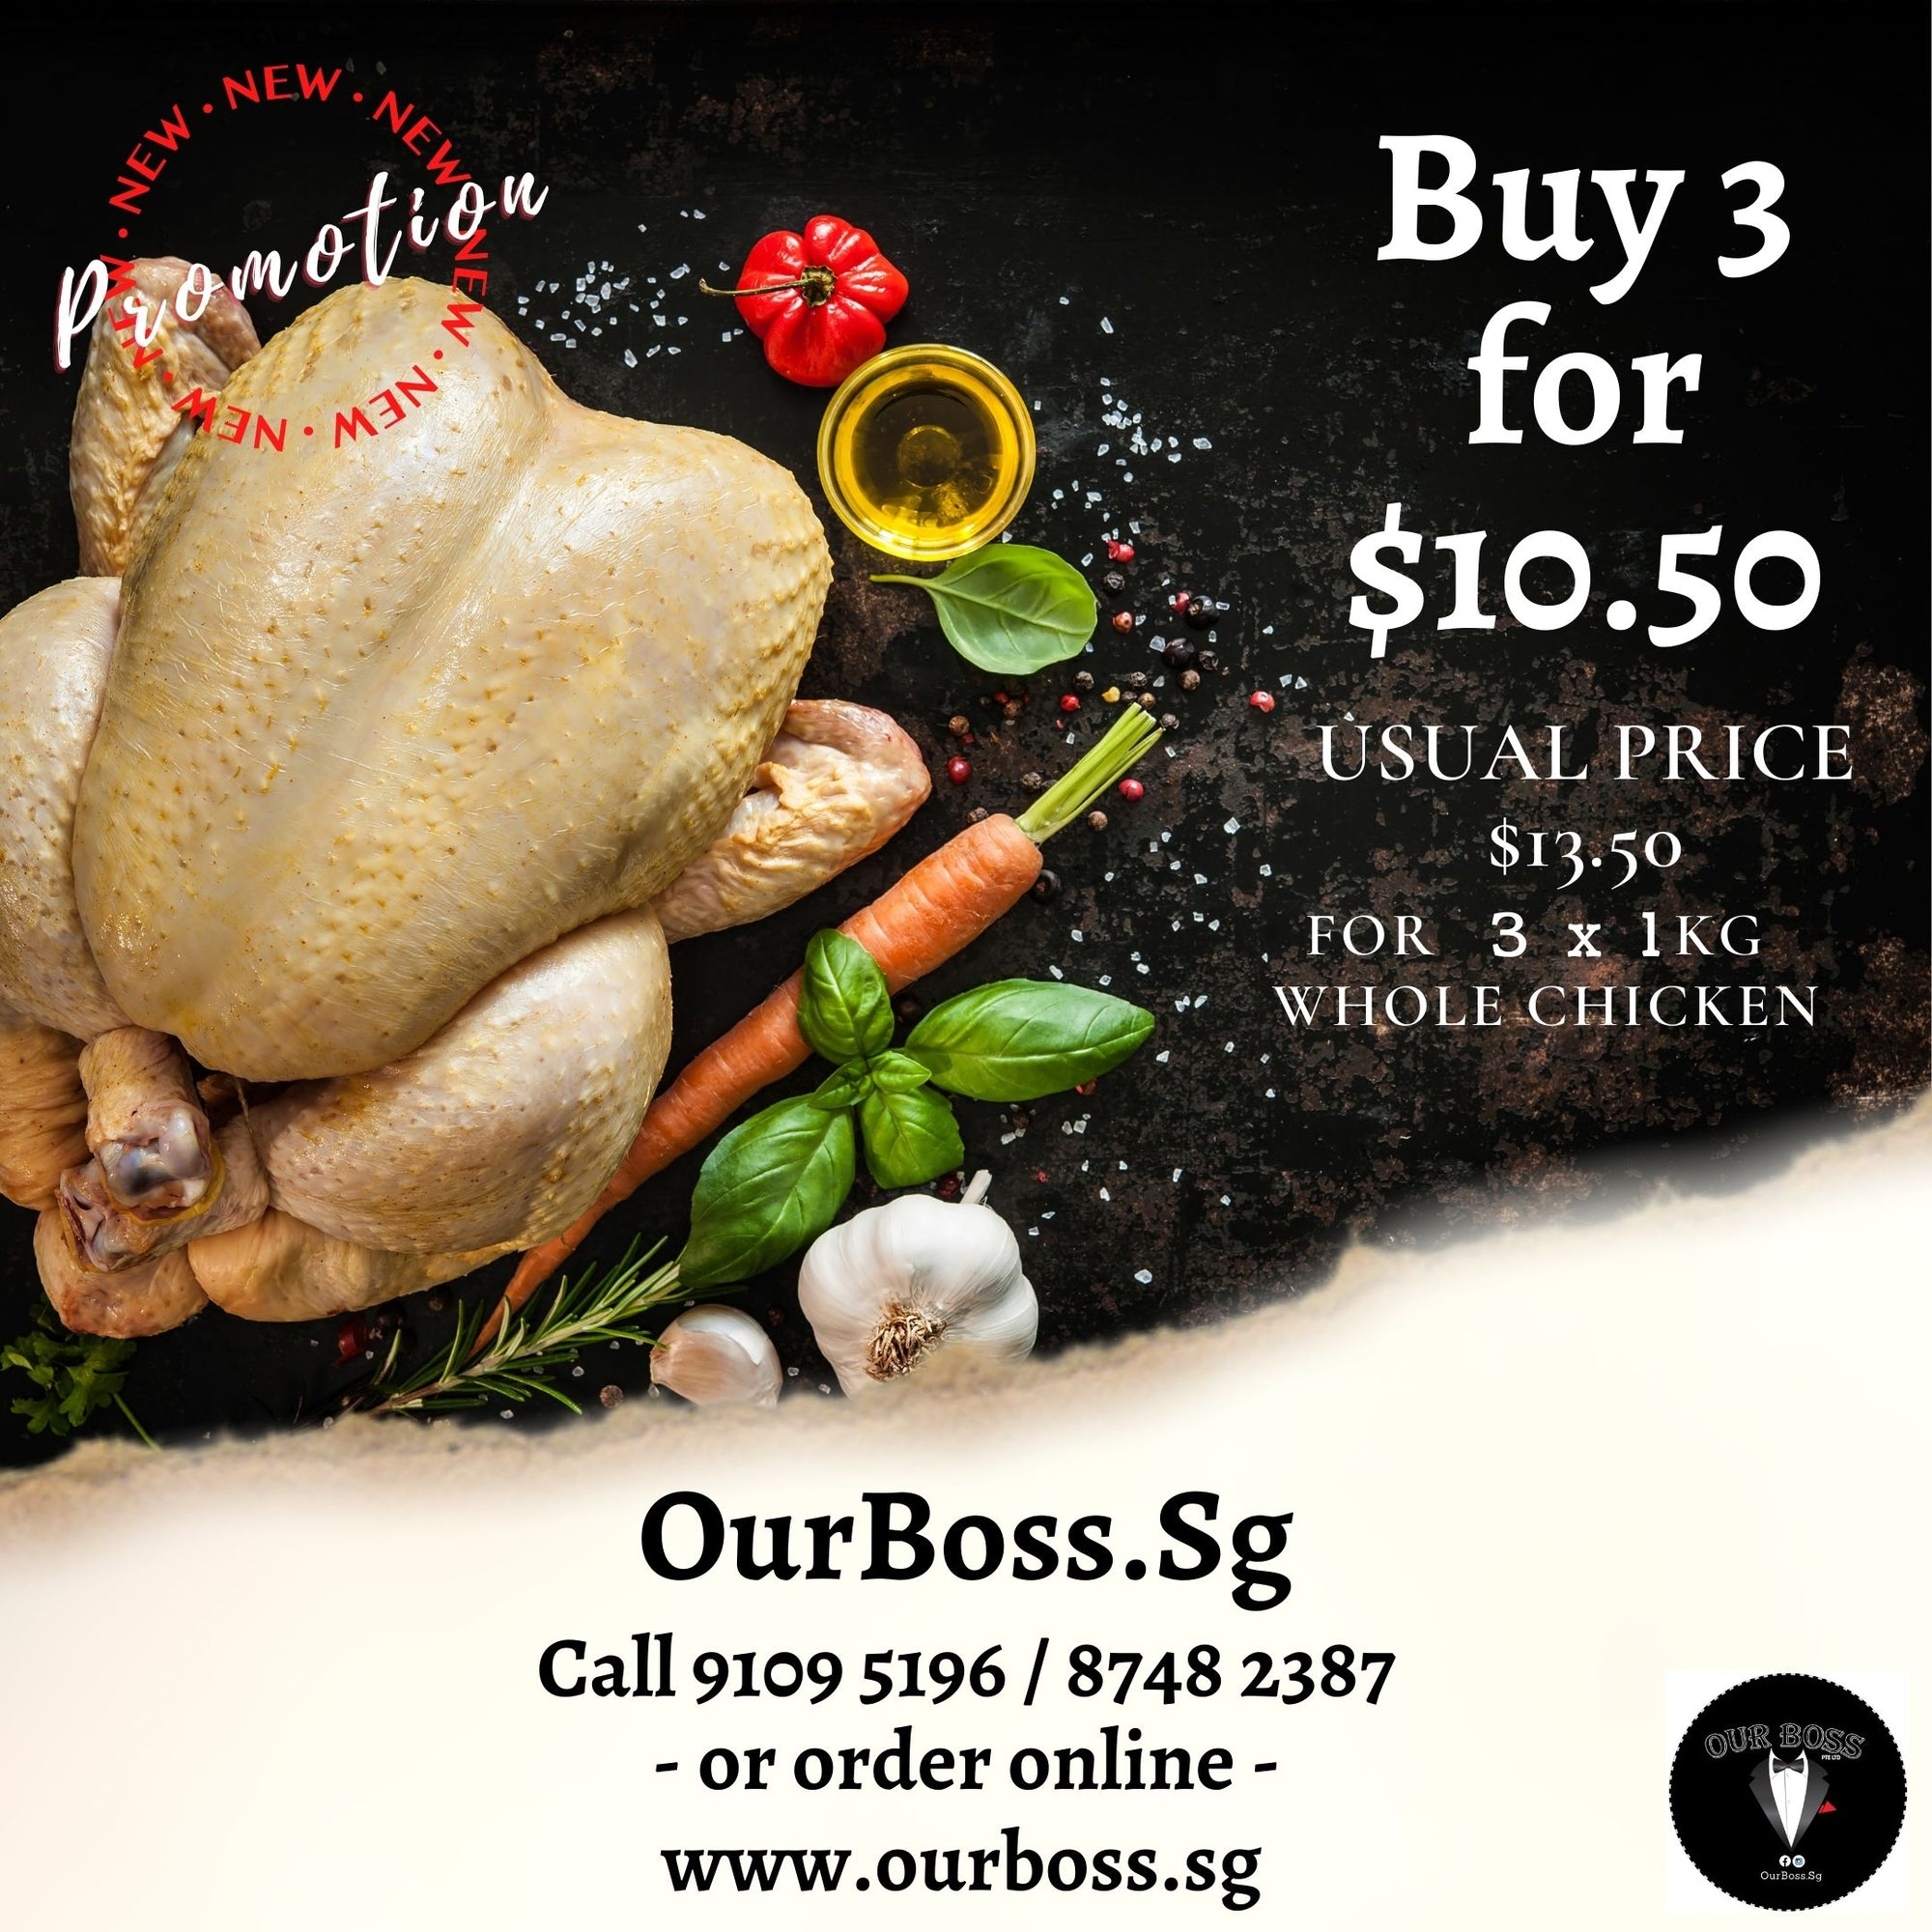 Whole Chicken Promo